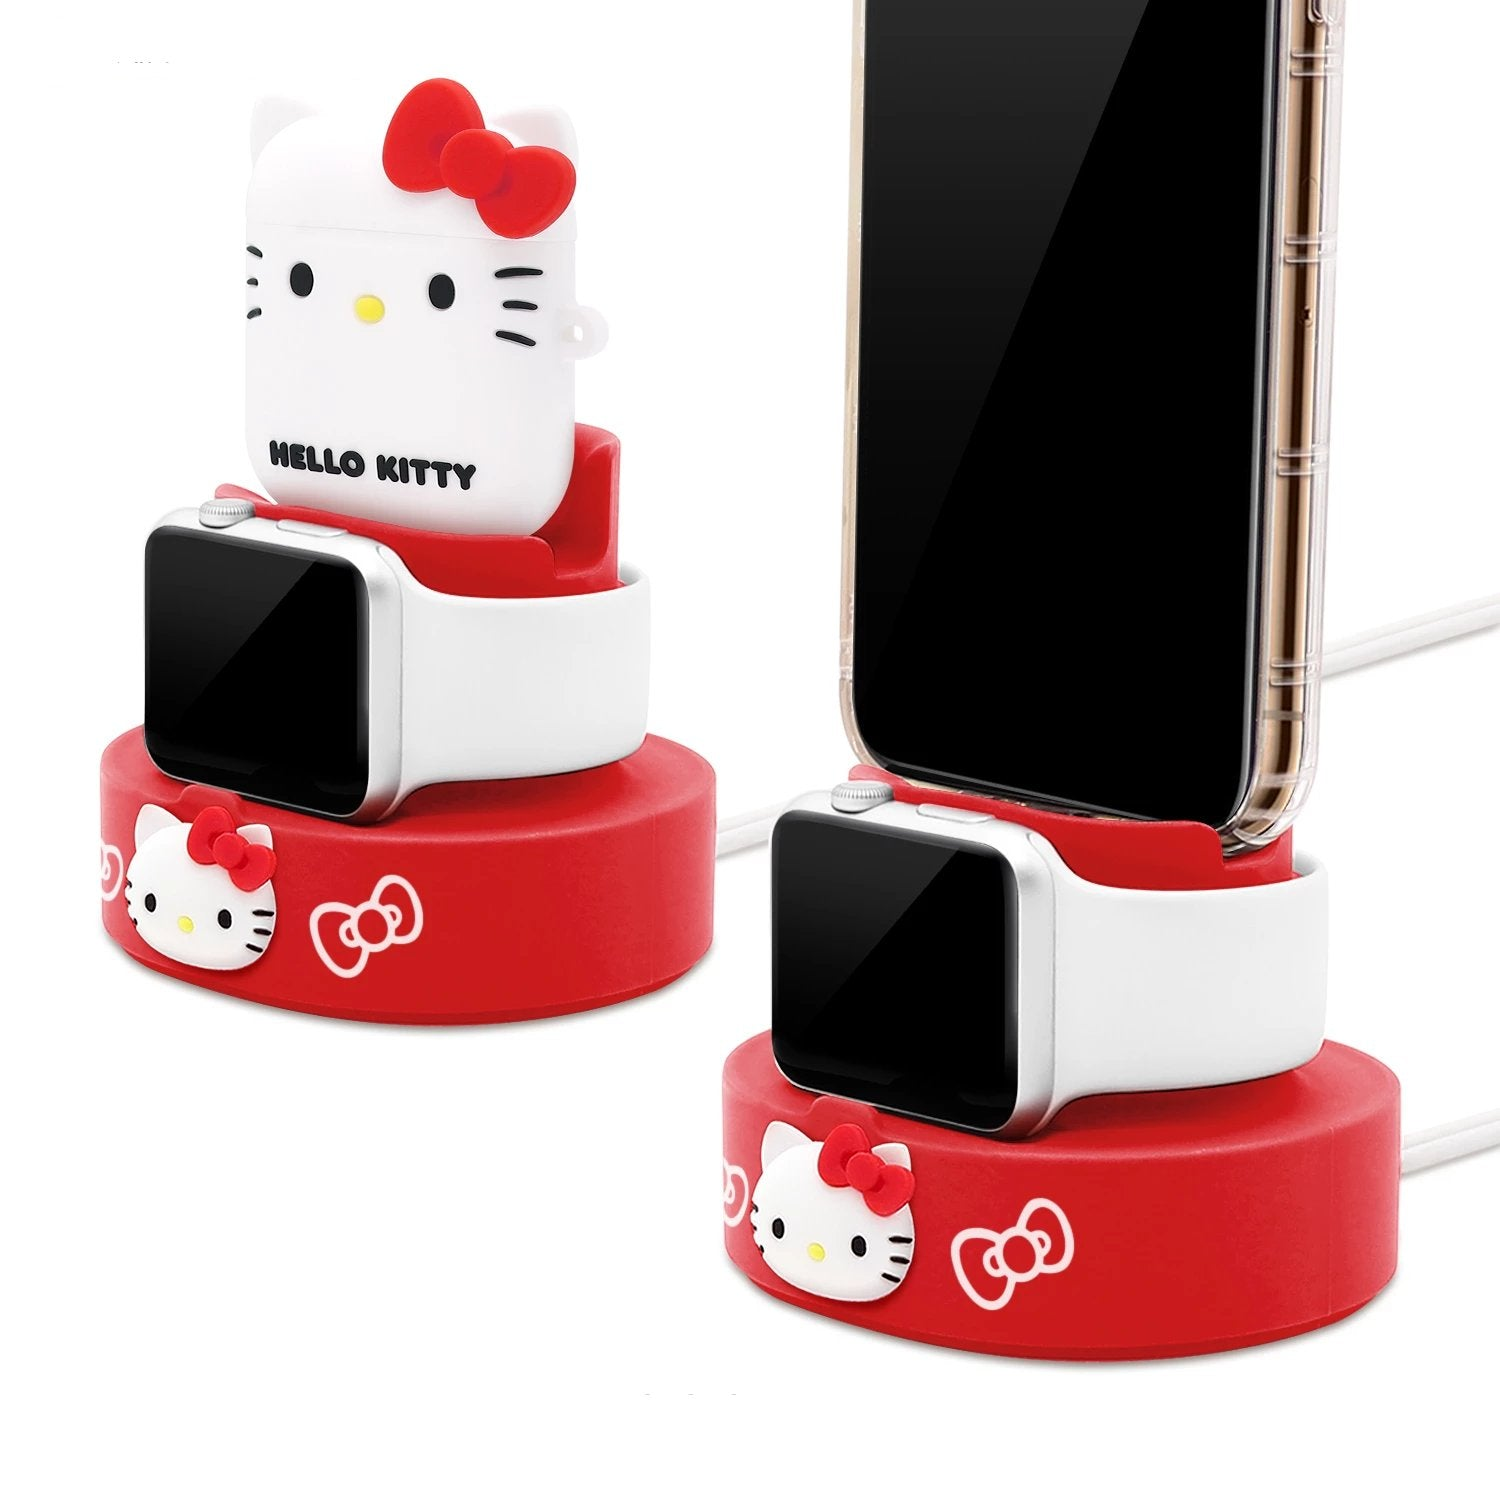 GARMMA Hello Kitty Apple Watch Charger Dock AirPods Charging Stand iPhone Holder